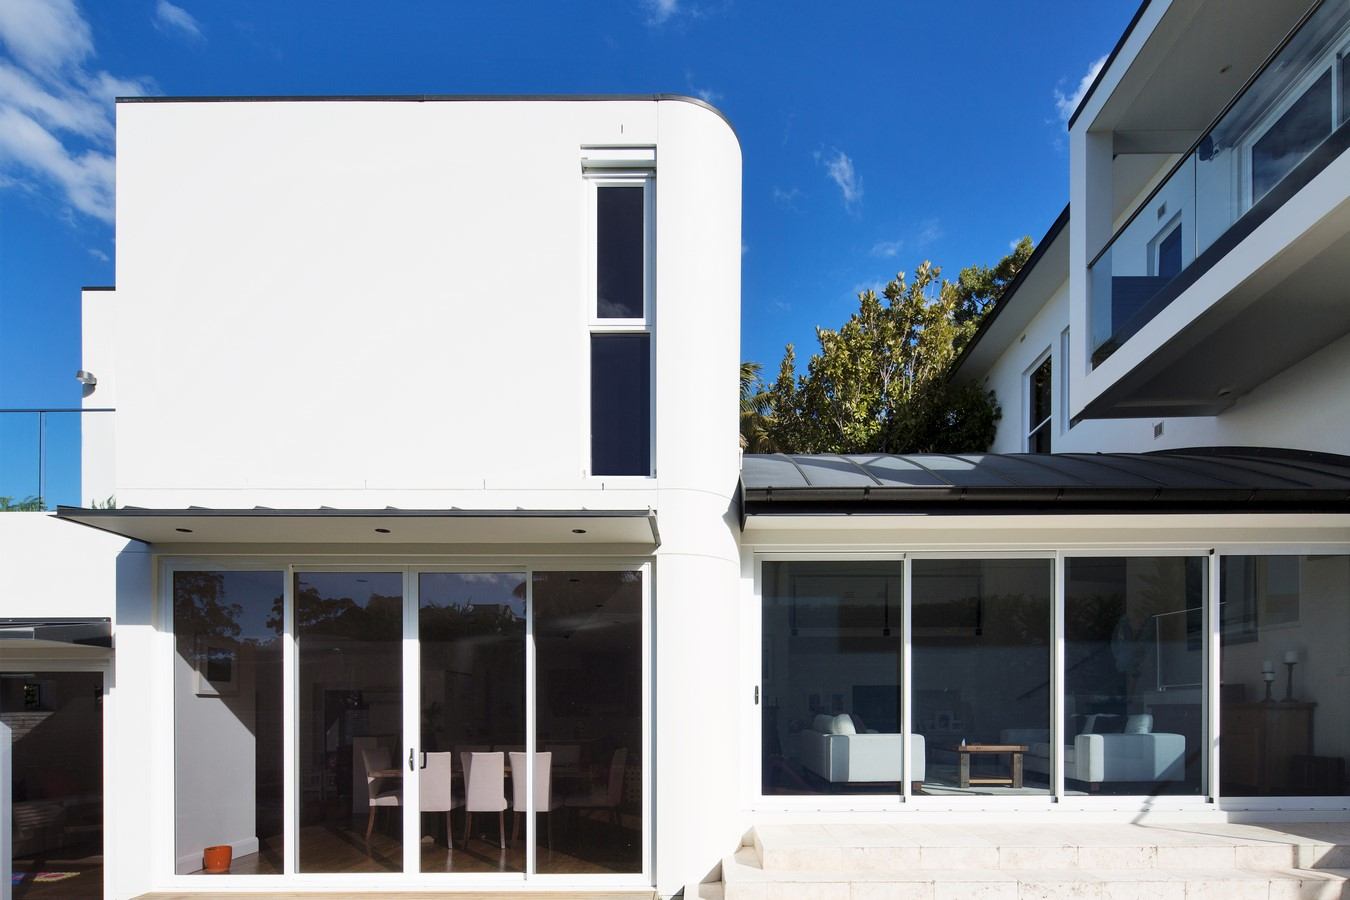 balmoral residence by buck&simple doers of stuff - Sheet1